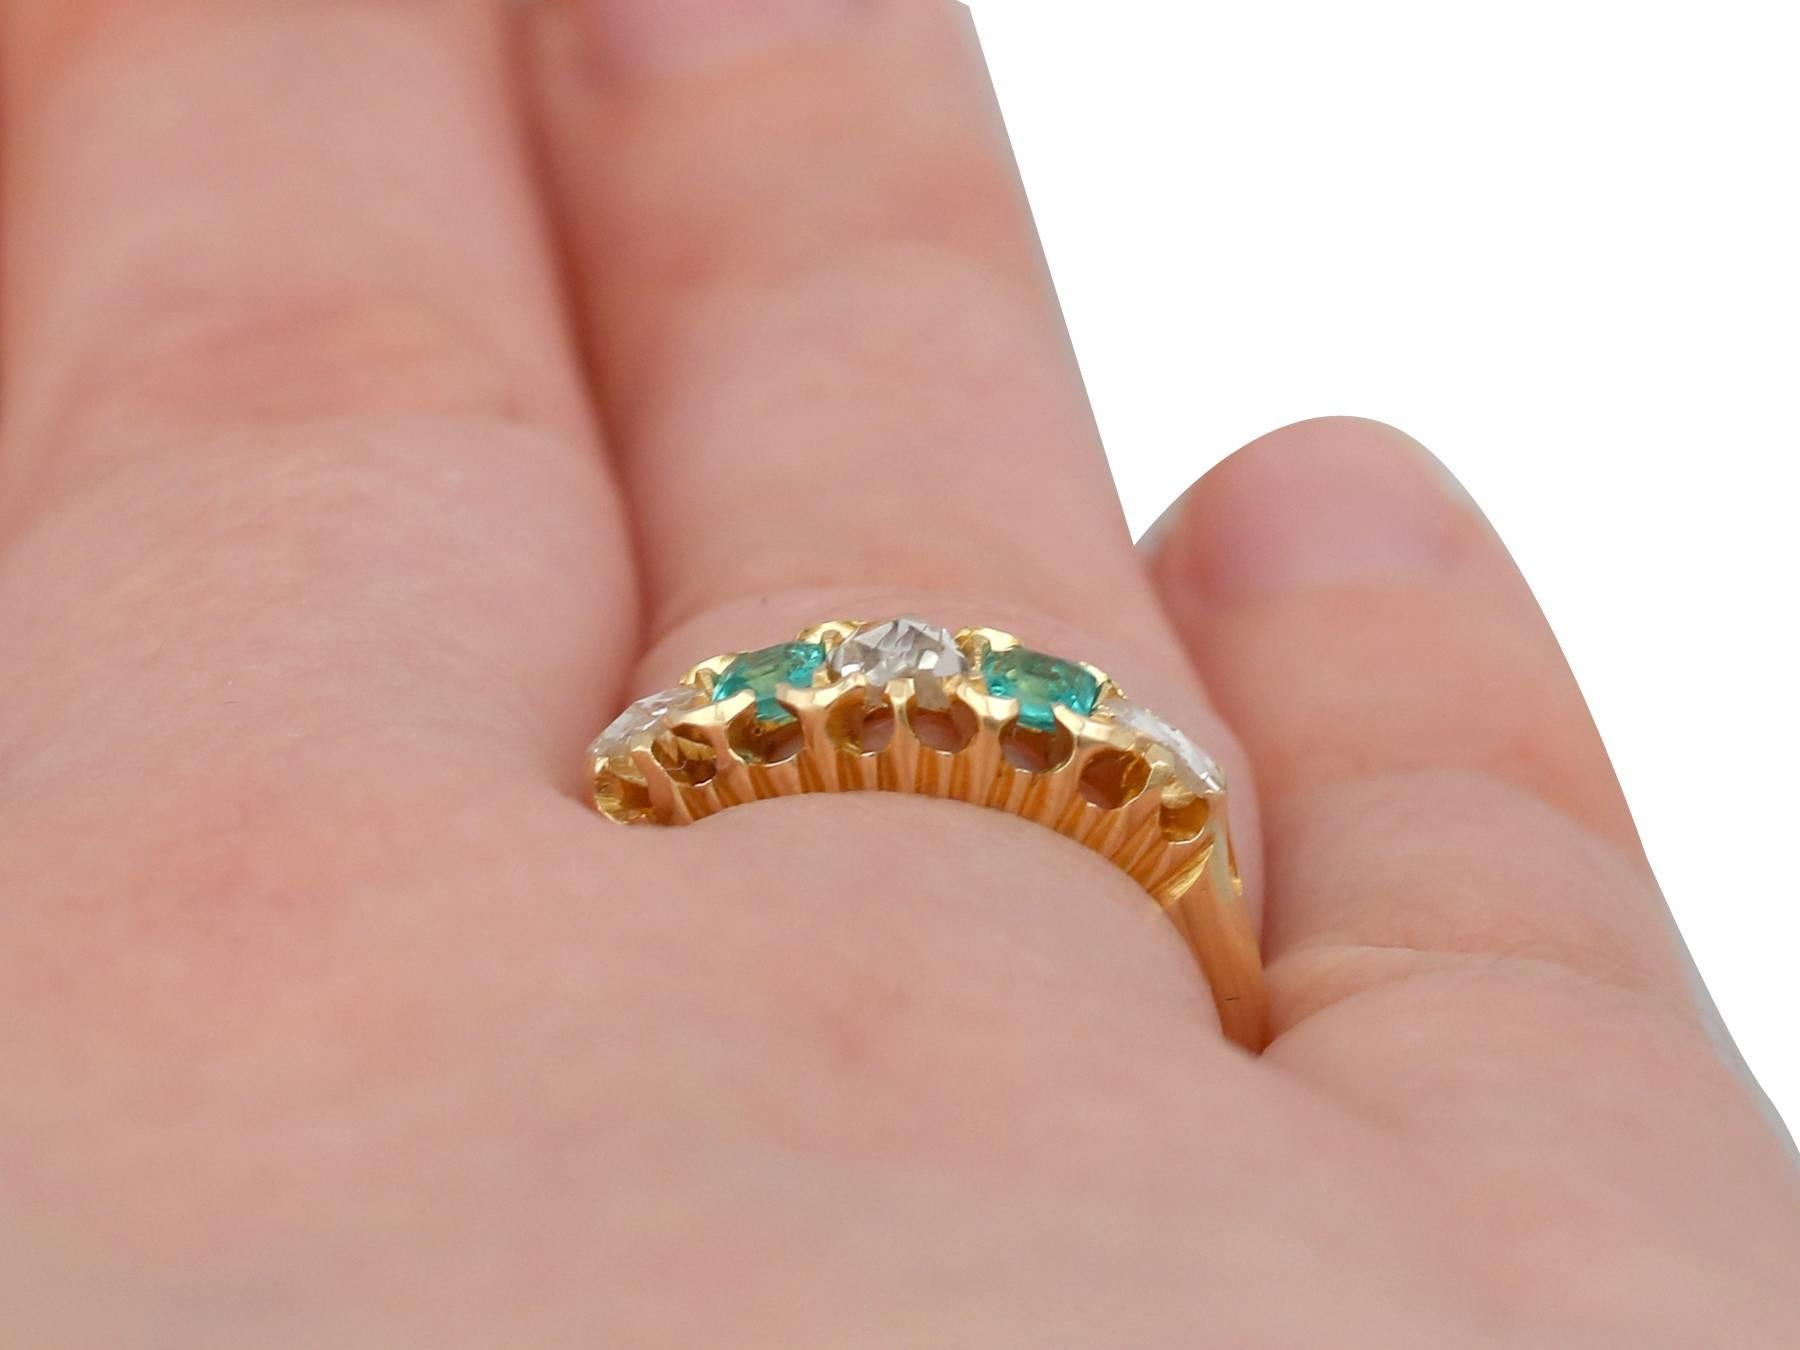 1890s Antique Victorian Diamond and Emerald Yellow Gold Ring at 1stdibs